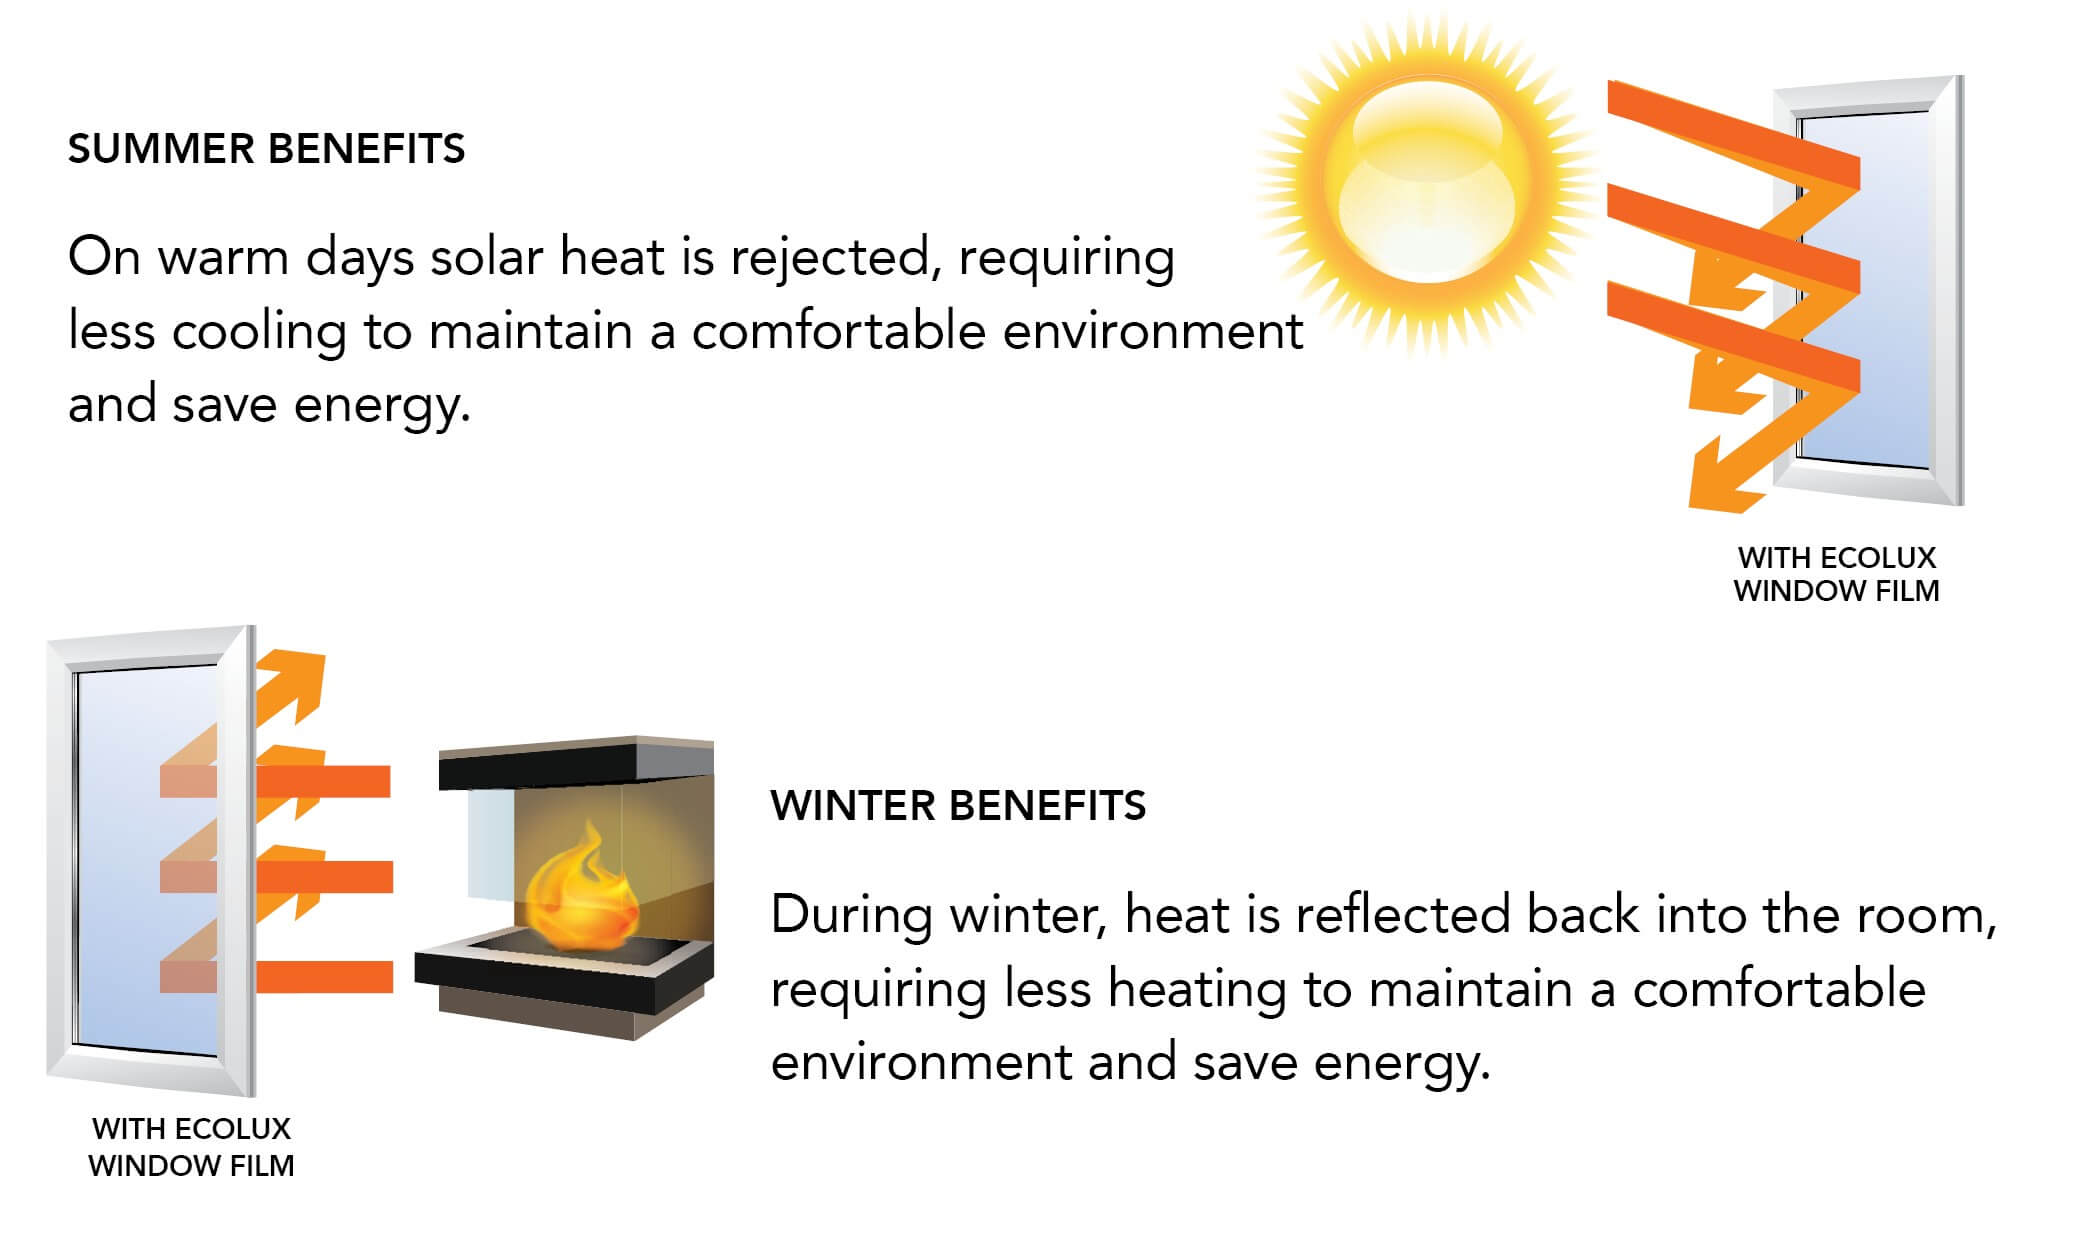 Benefits of Ecolux window film in the winter and summer